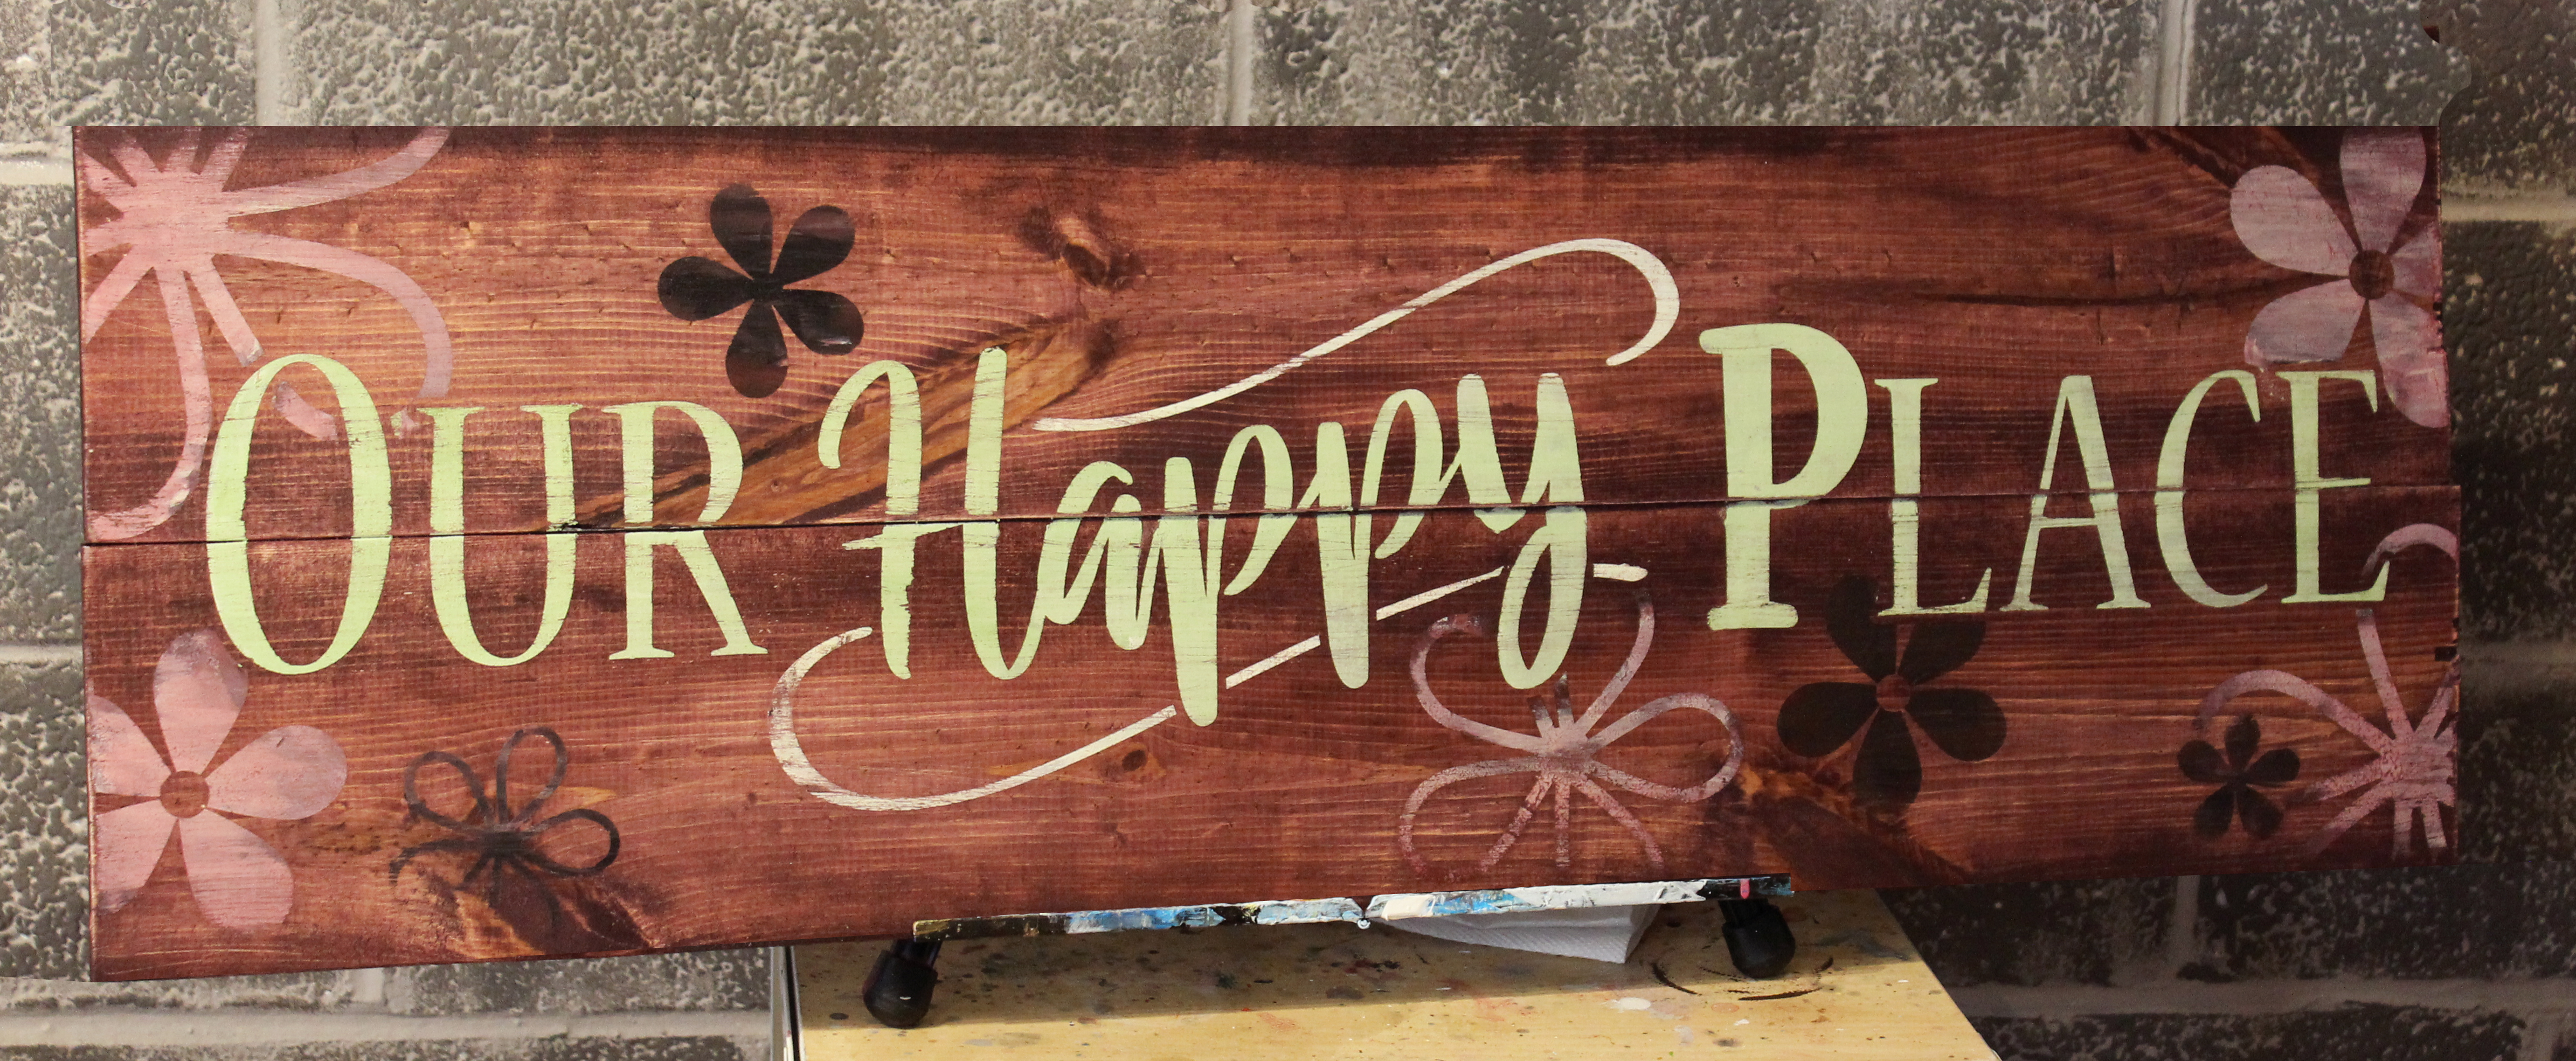 Our Happy Place 12x36